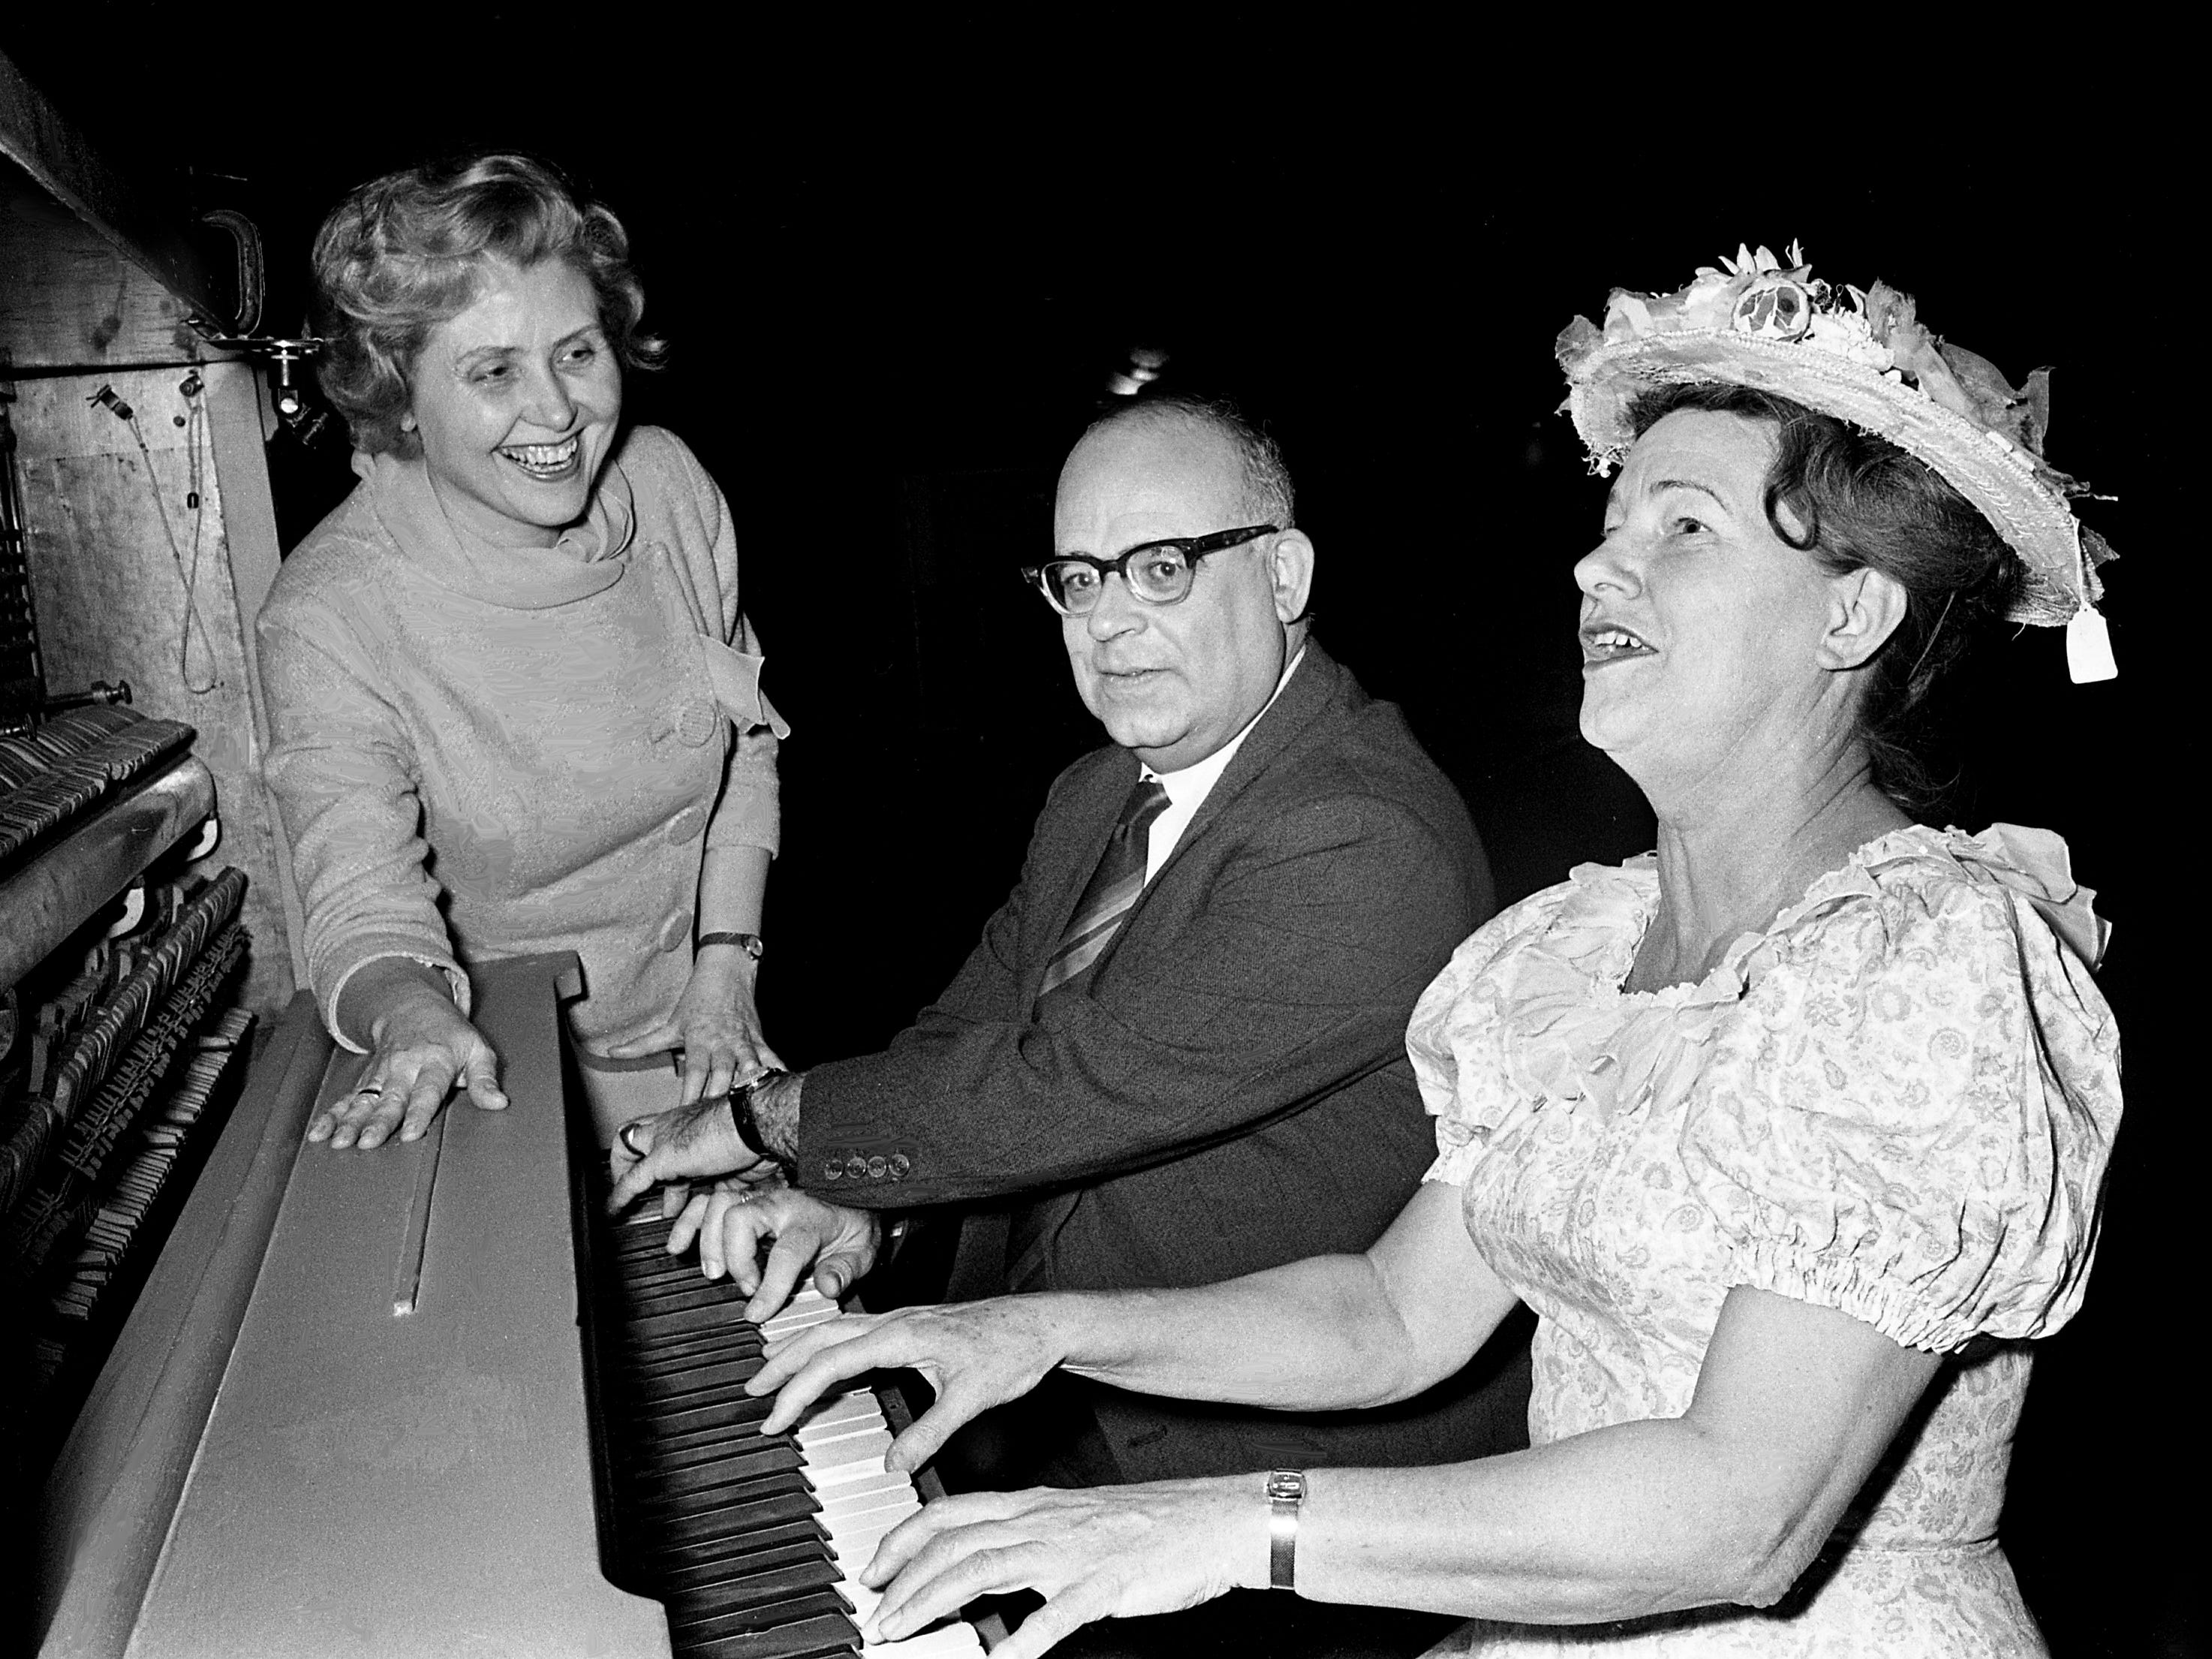 Soprano Signe Quale Dawson, left, and her pianist, Carl Fuerstner of Tennessee's unique traveling opera company, get a few lessons from Minnie Pearl during a visit to the Ryman Auditorium on Jan. 29, 1969.